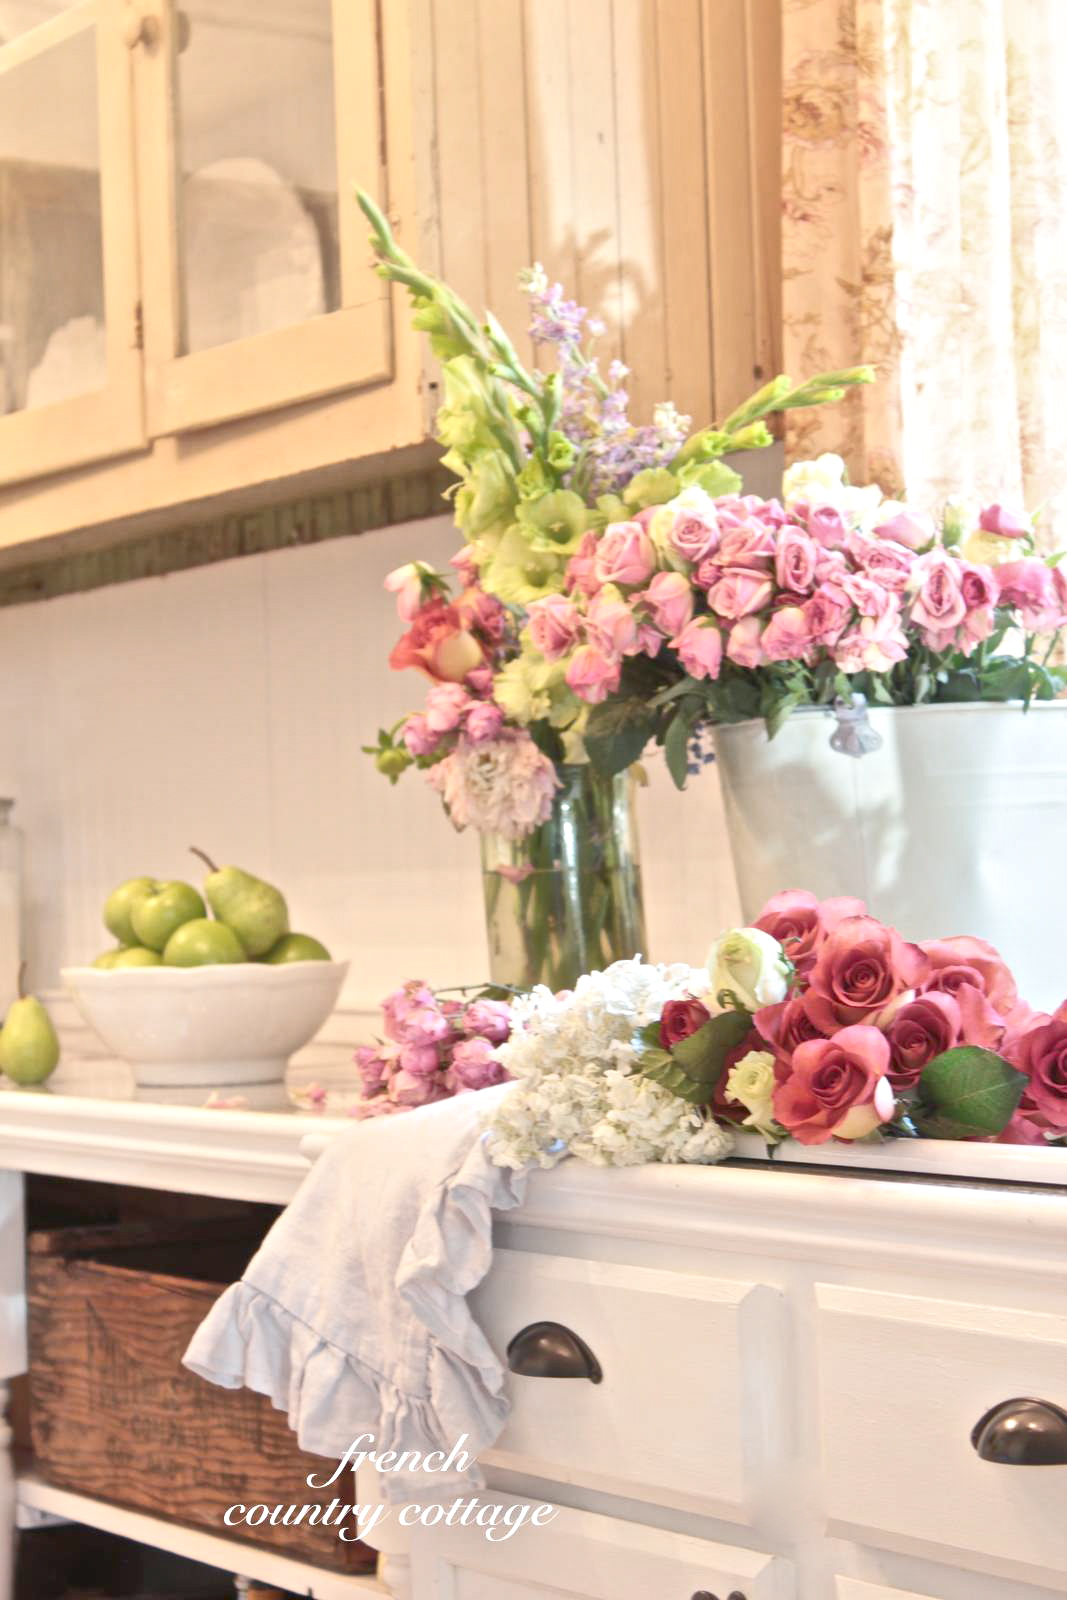 Courtney at french country cottage decorated the kitchen - Courtney At French Country Cottage Decorated The Kitchen 38